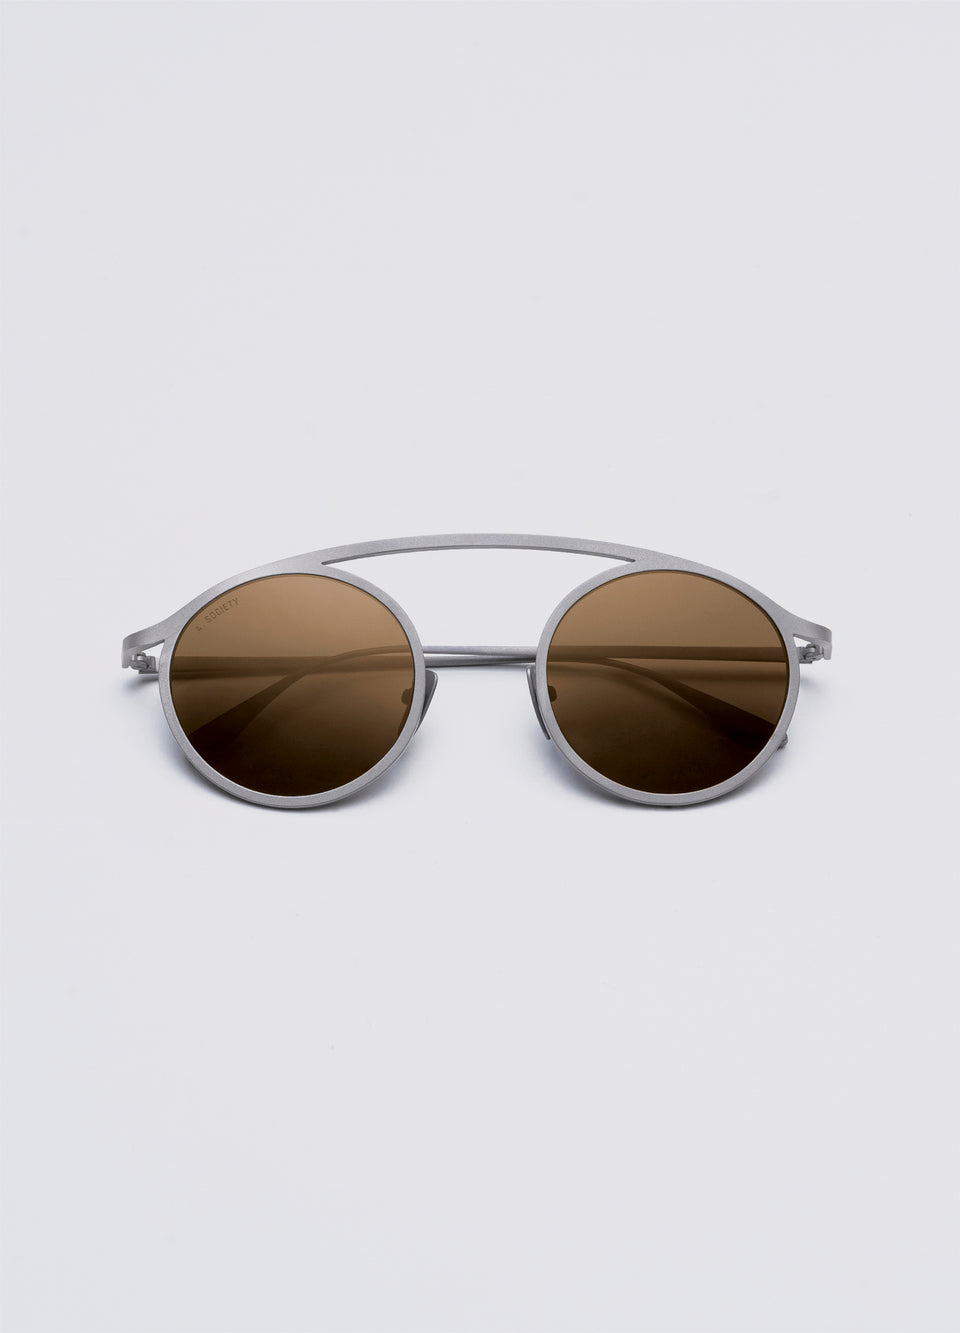 A SOCIETY NEO - Brown Titanium Round Sunglasses Front